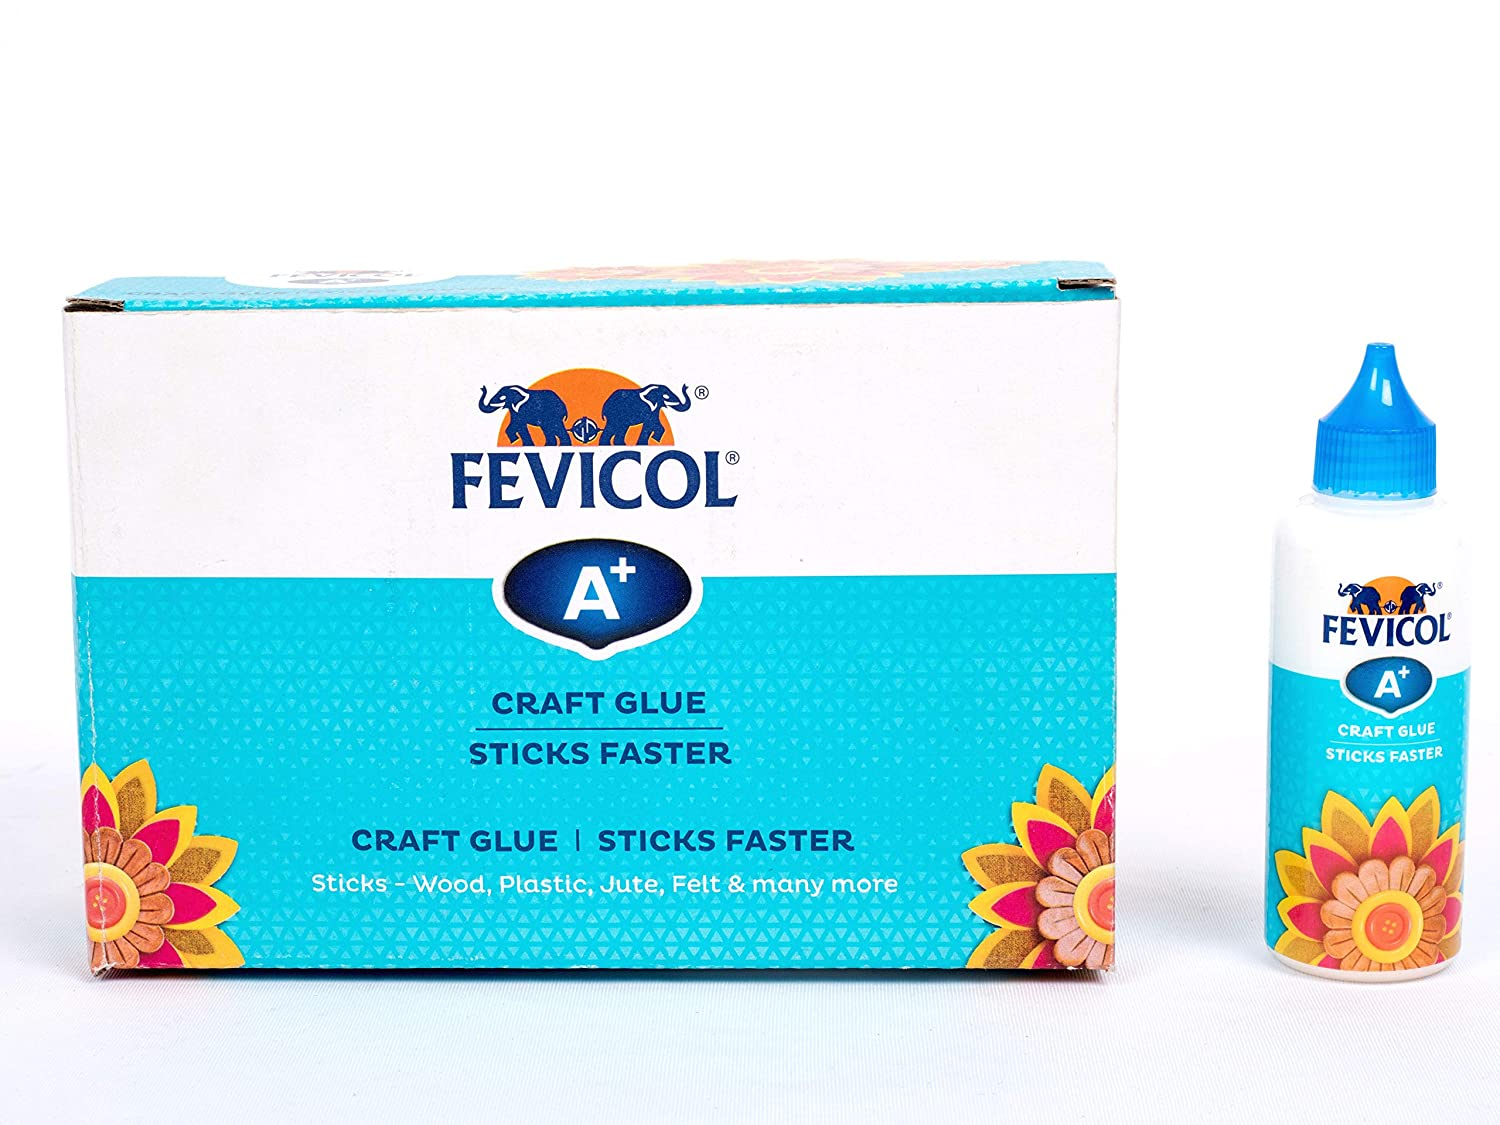 Fevicol A+ Craft Glue Adhesive, Sticks Faster (85g)